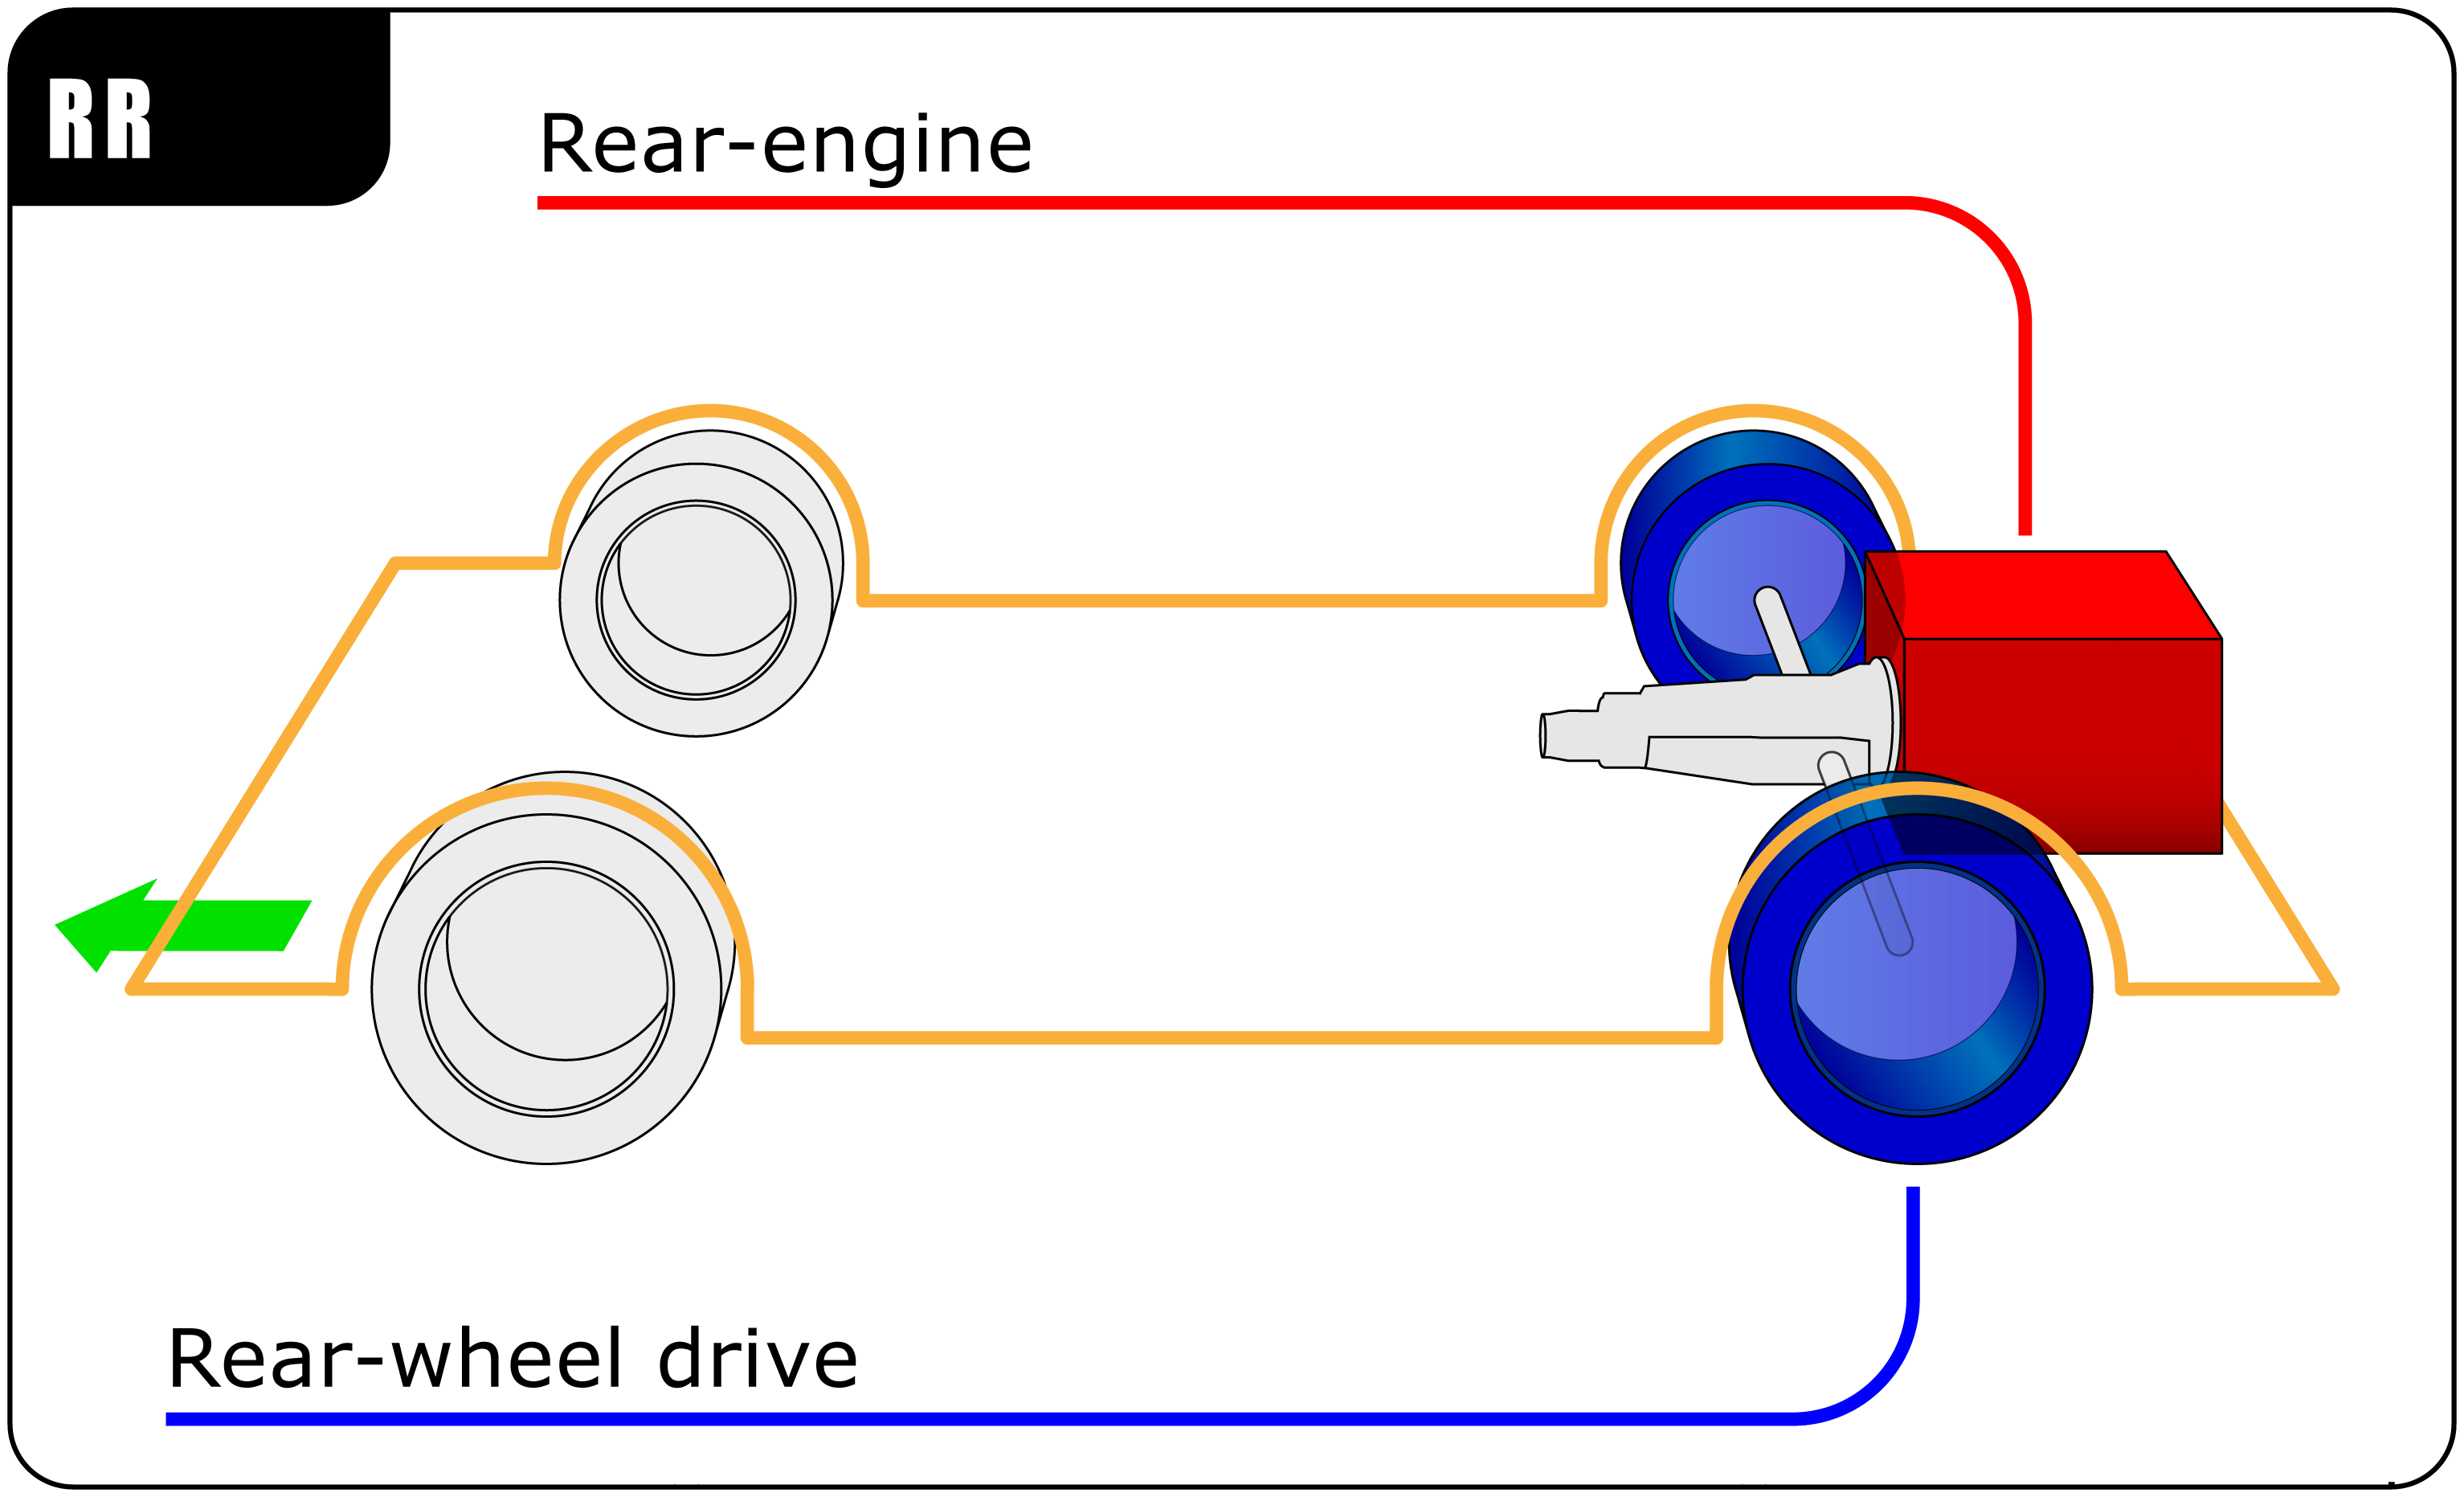 18 wheeler wheel position diagram modern design of wiring diagram • rear engine rear wheel drive layout rh en org 18 wheeler diagram labeled